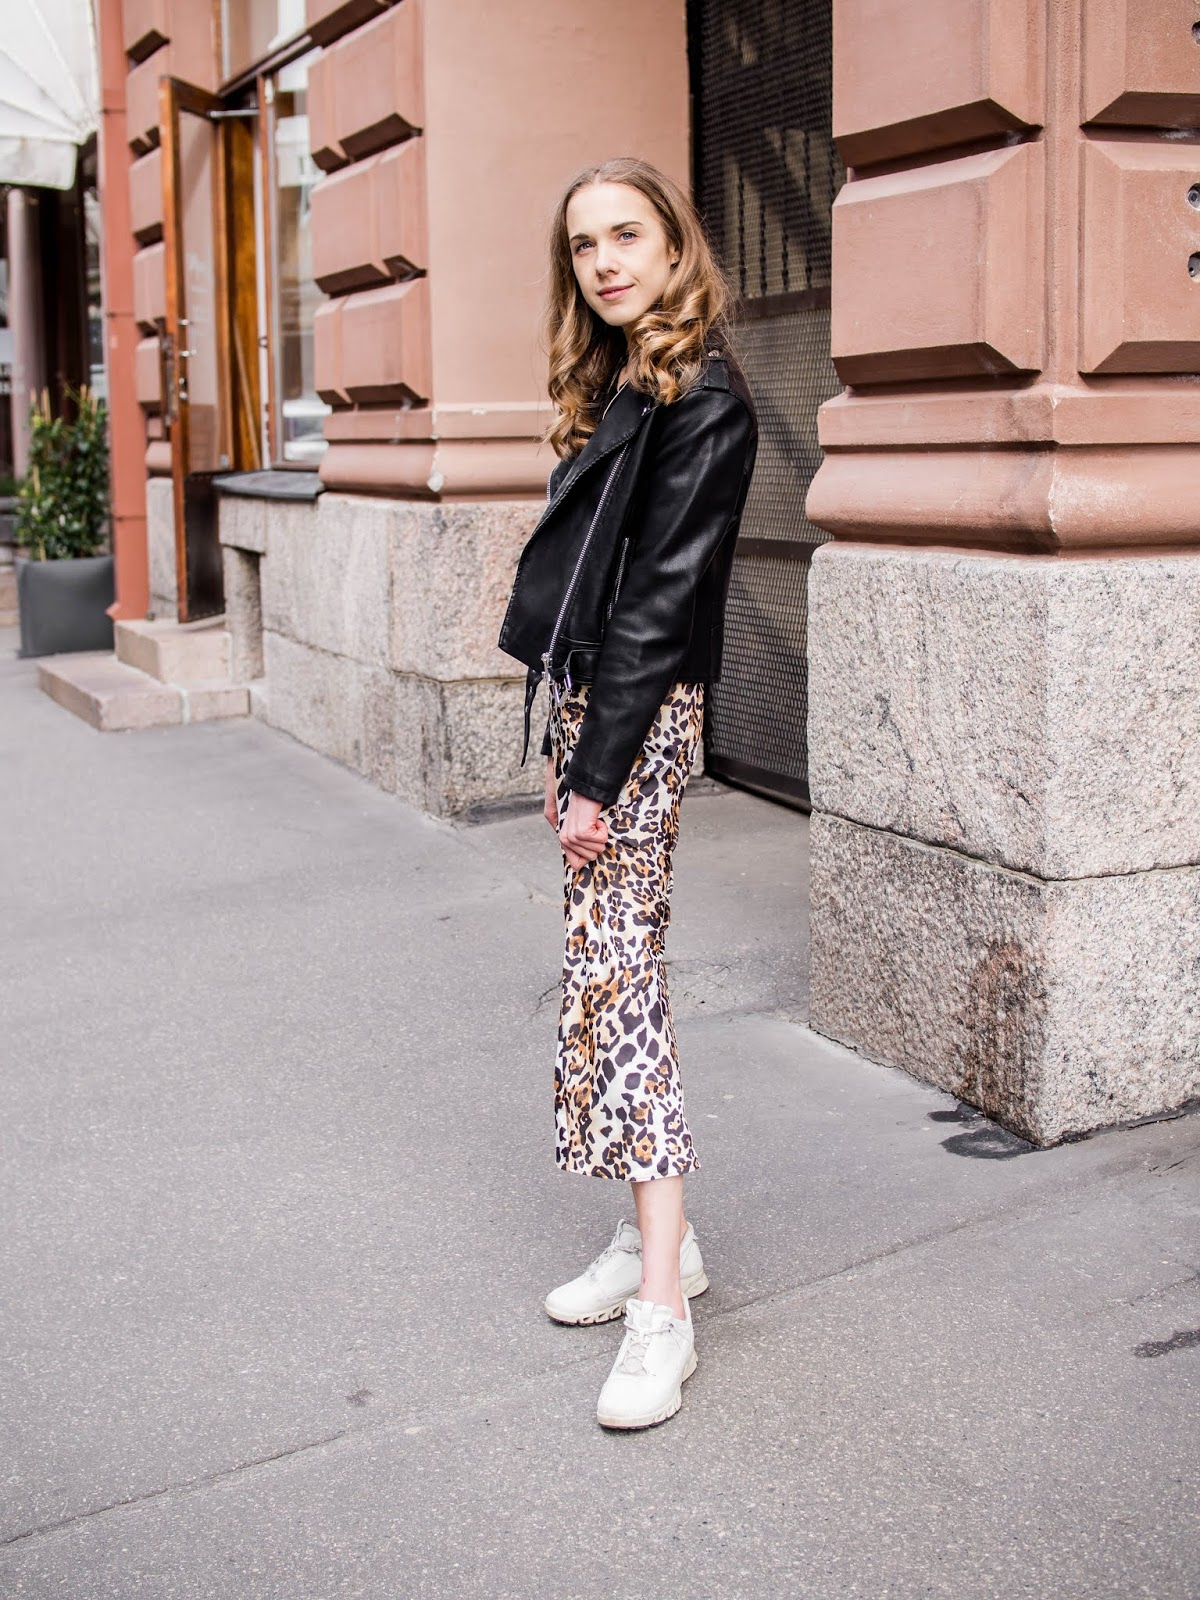 Outfit inspiration with bias cut leopard print midi skirt - Asuinspiraatio: satiininen leopardihame